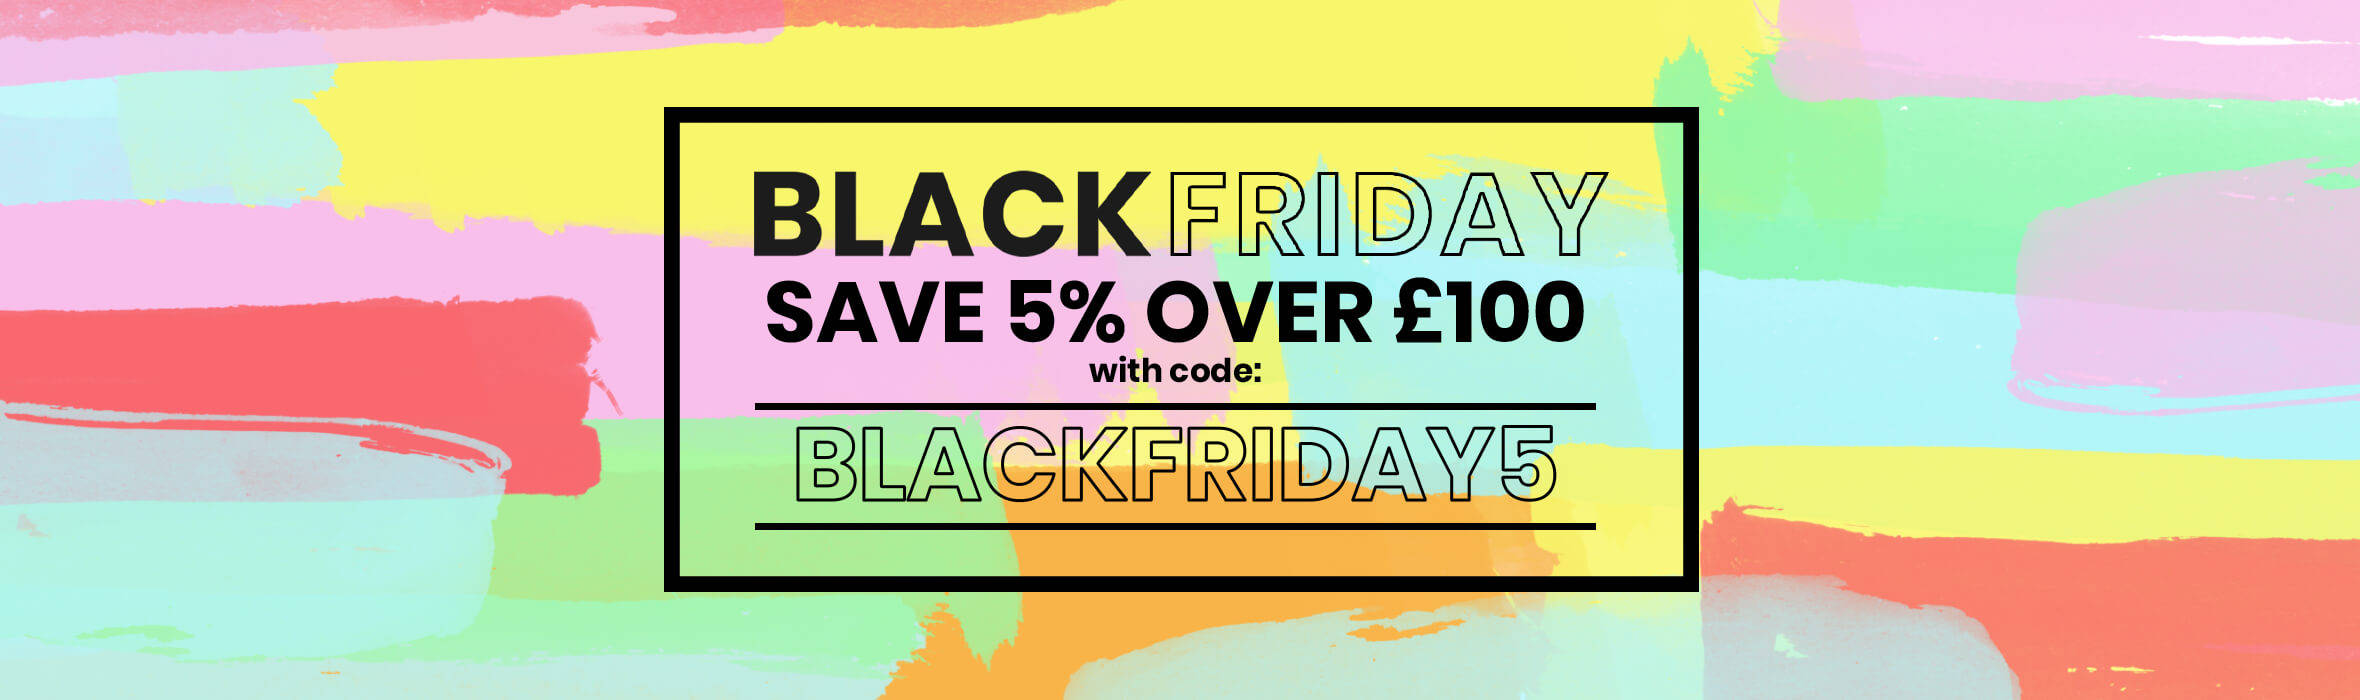 Save 5% over £100 with code BLACKFRIDAY5